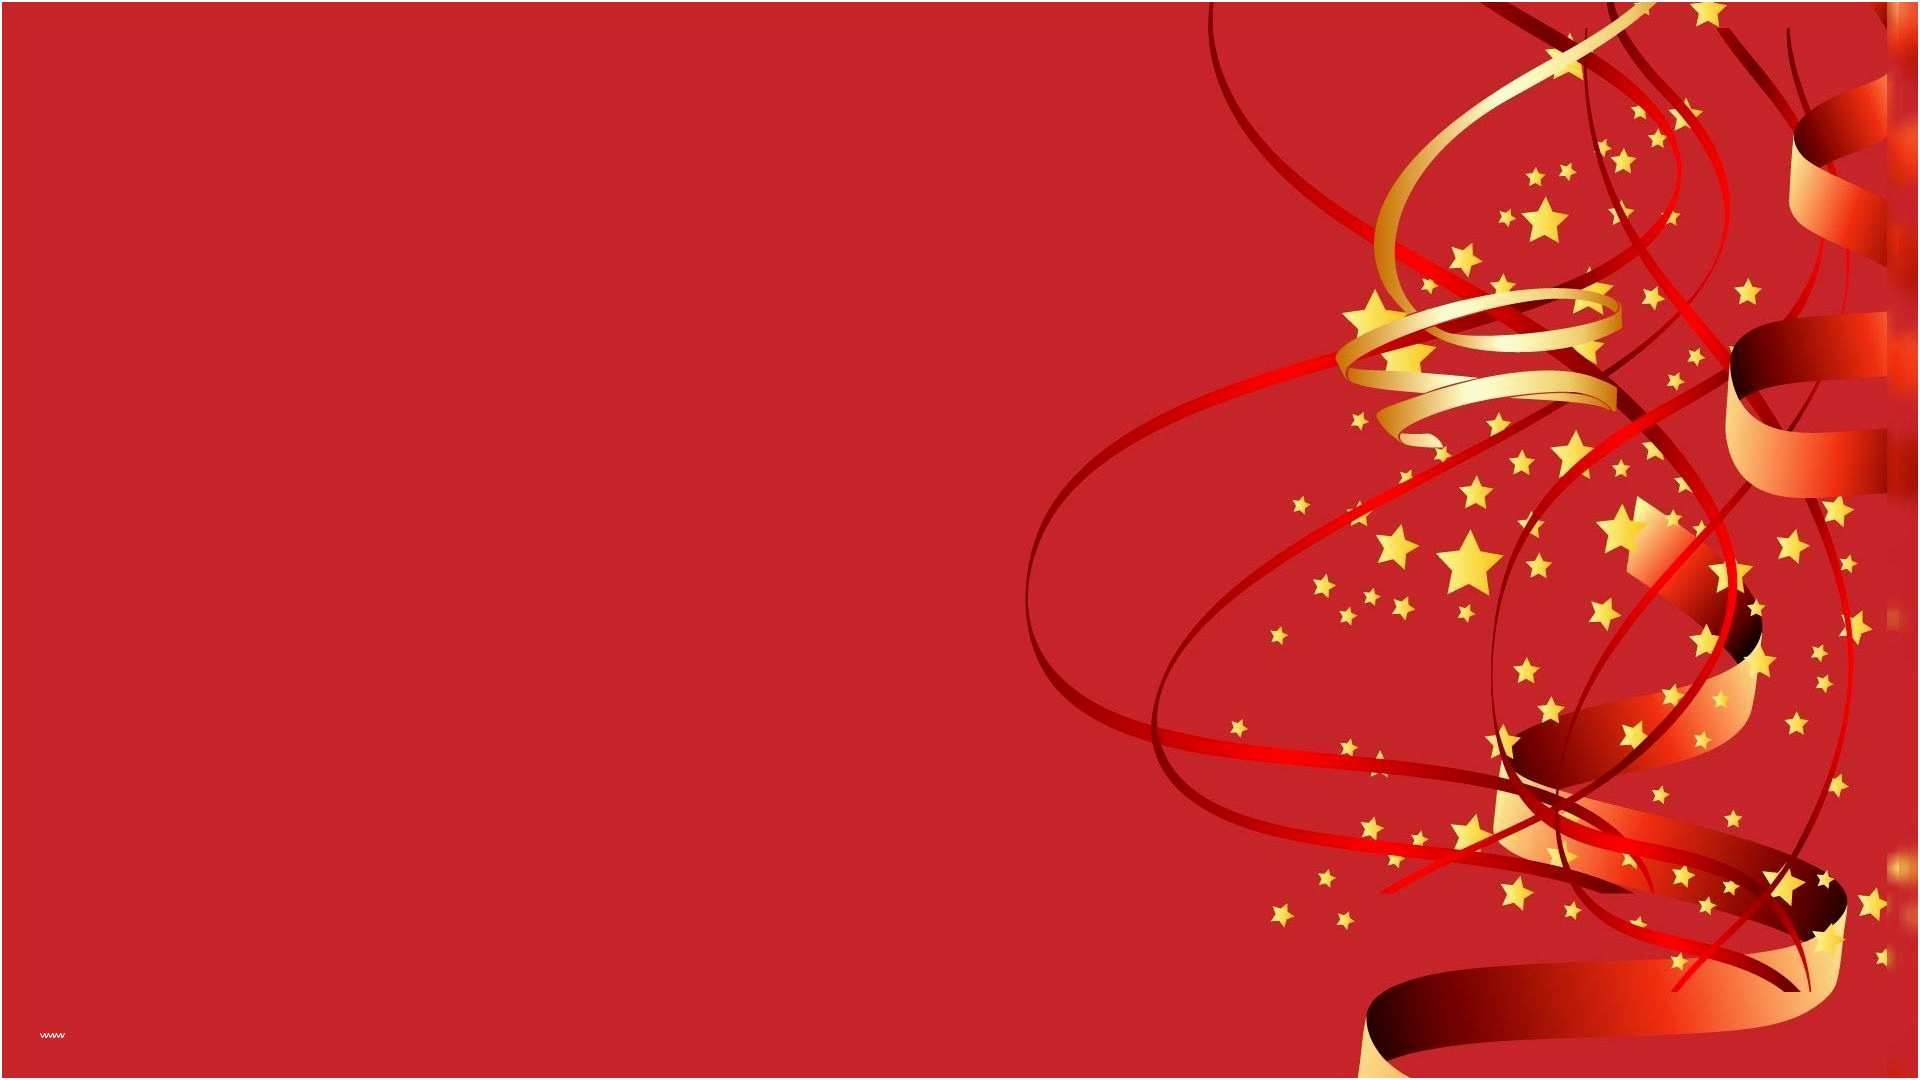 christmas birthday background ; happy-birthday-christmas-images-best-of-happy-birthday-background-powerpoint-backgrounds-for-free-of-happy-birthday-christmas-images